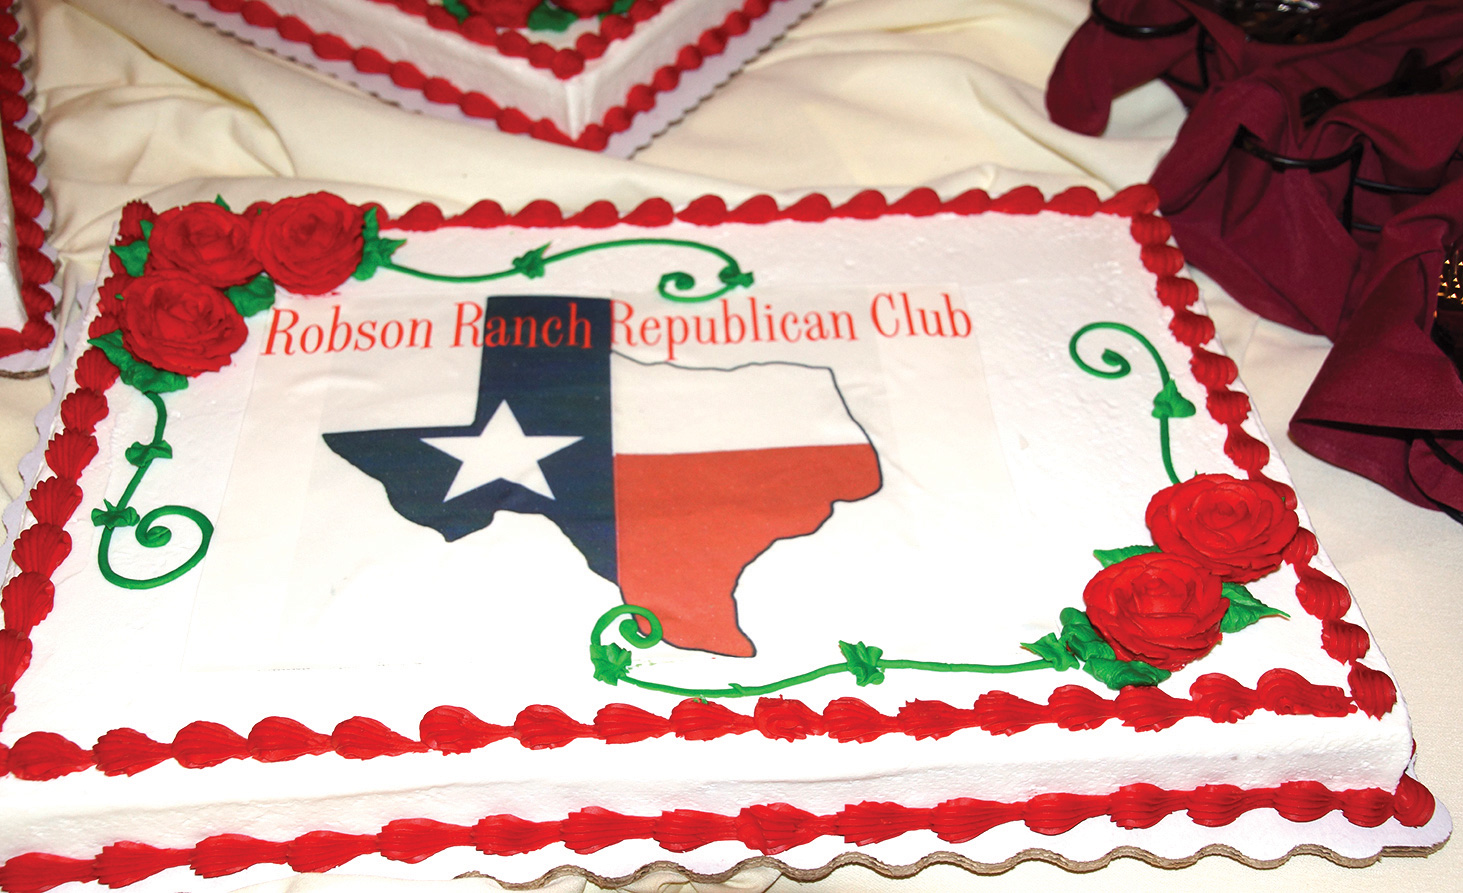 A lovely cake enjoyed by all that evening (Photo provided by RRRC member Dick Remski)